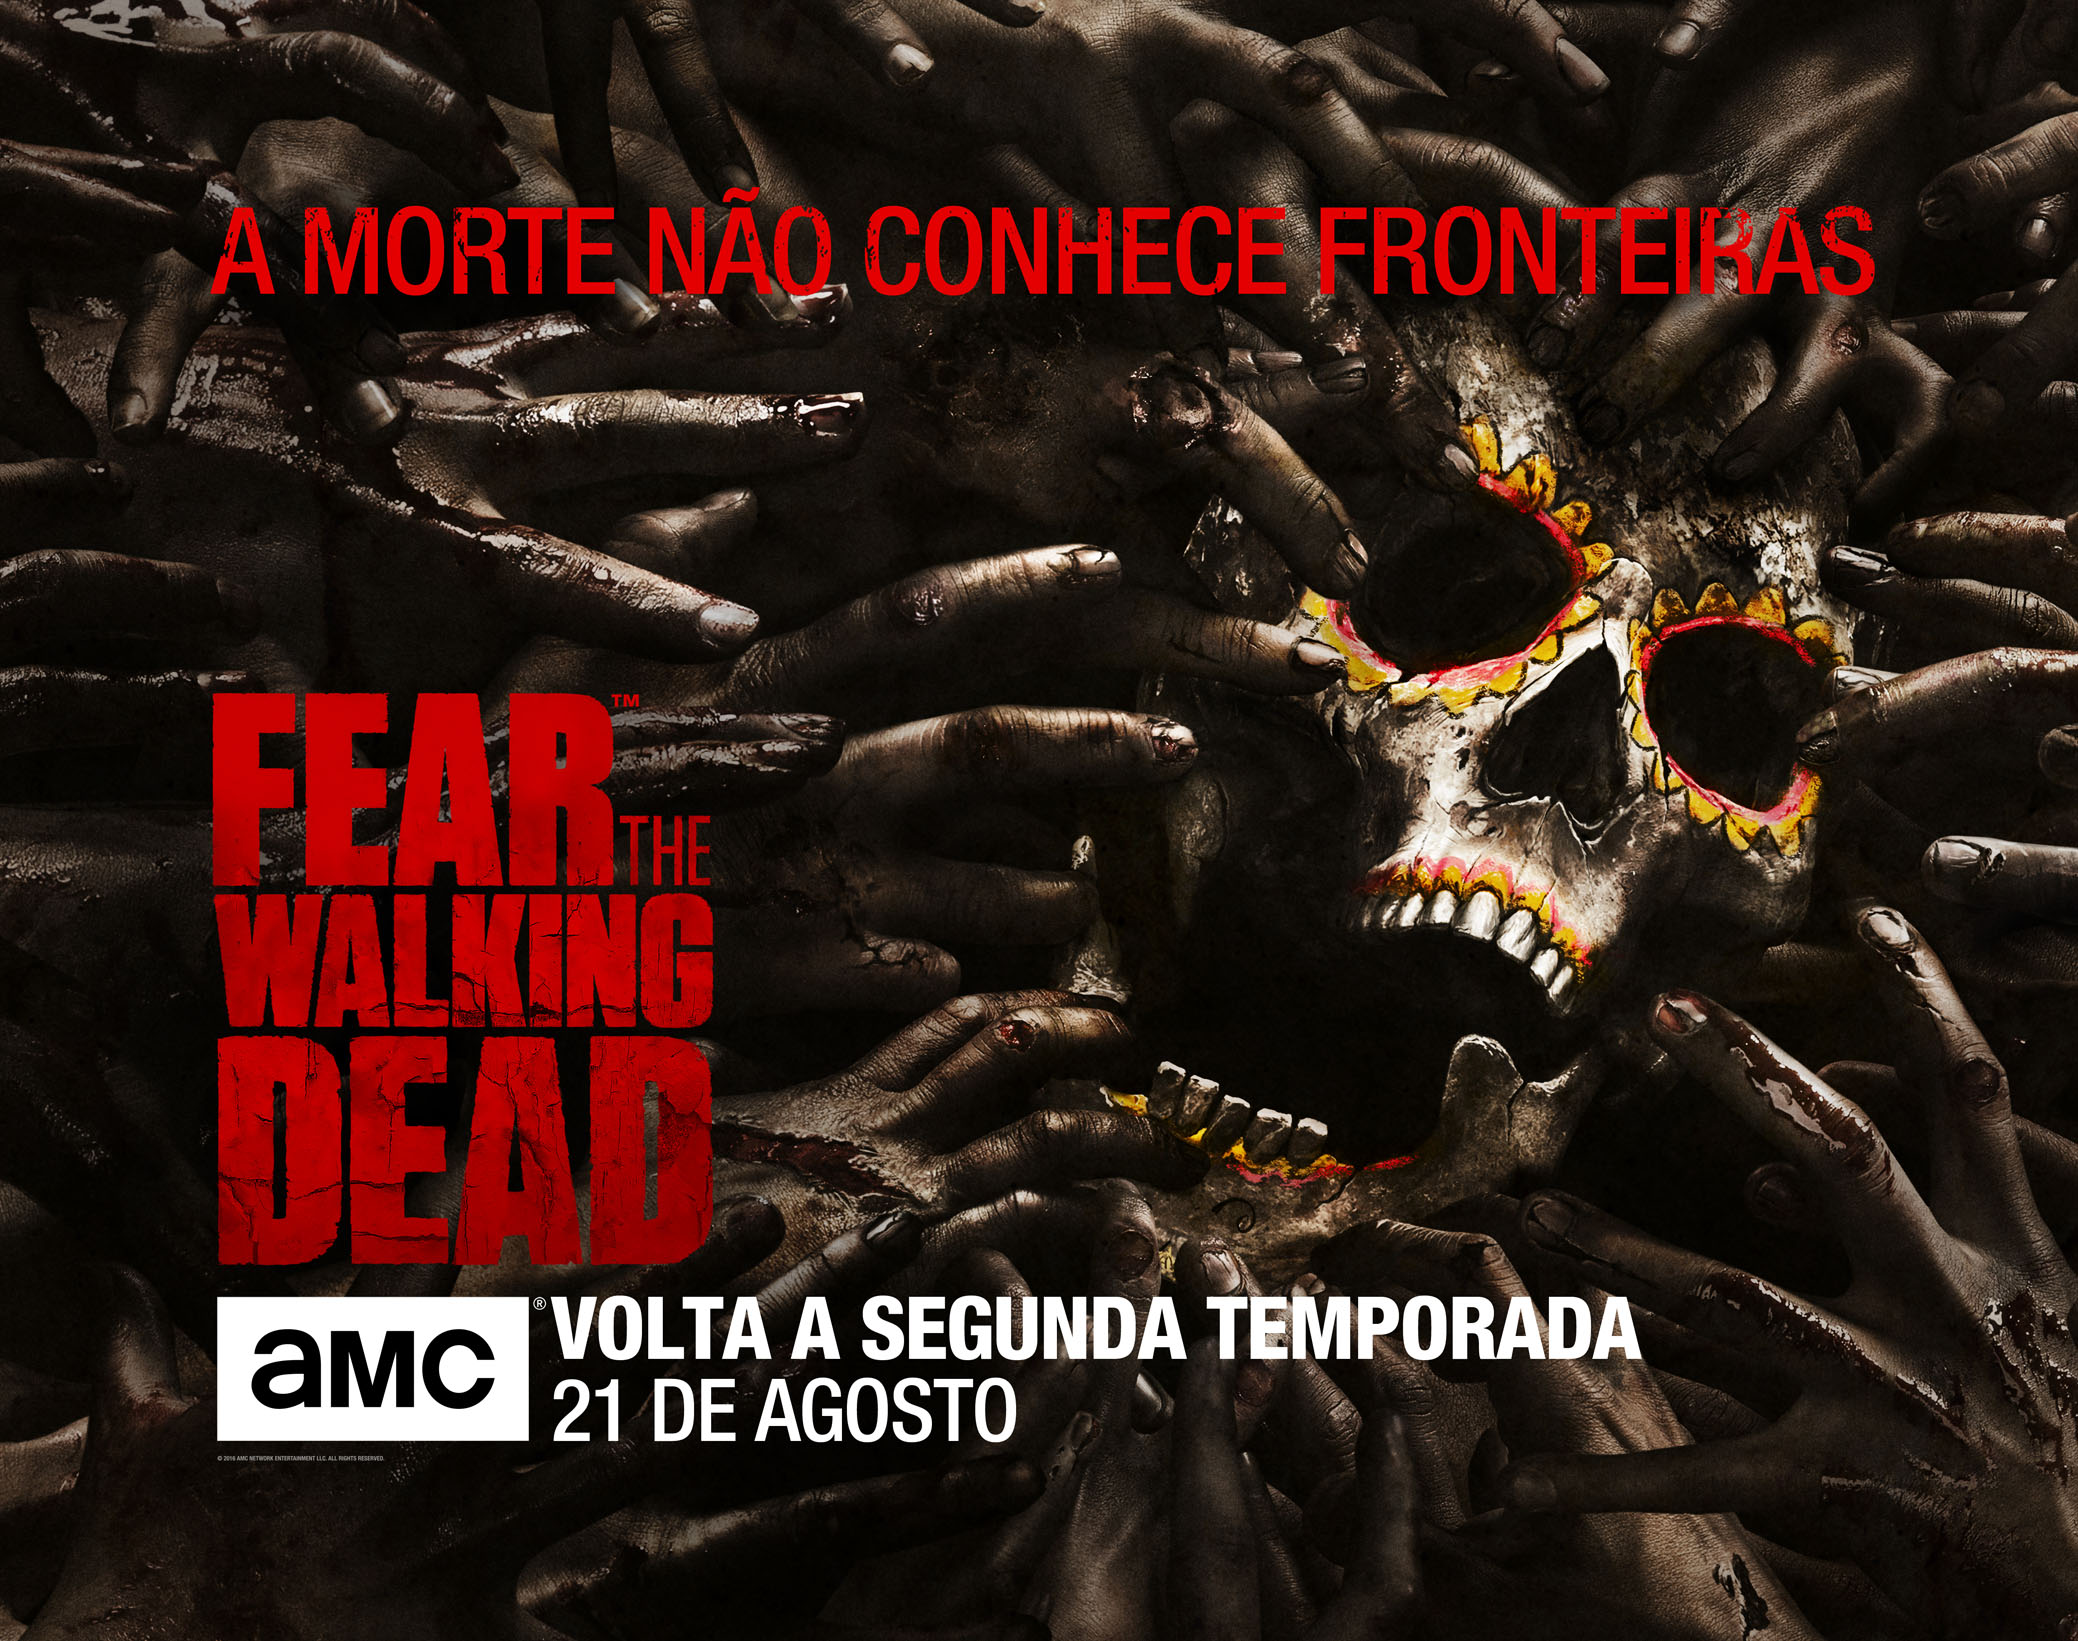 fear-the-walking-dead-2-temporada-poster-comic-con-san-diego-002